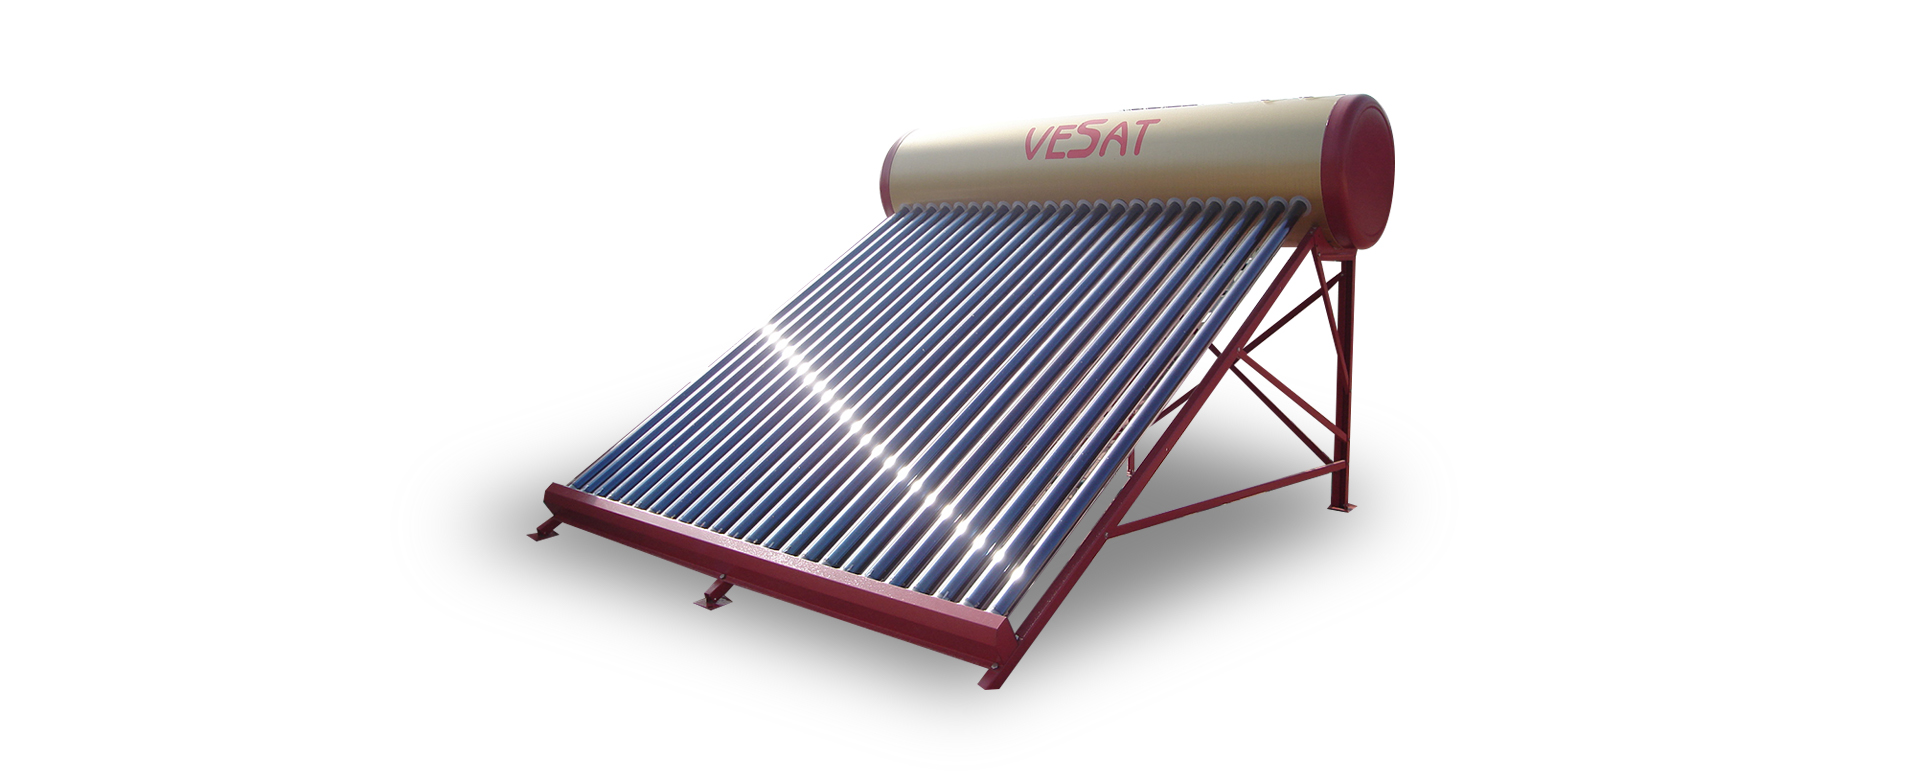 vesat solar water heater